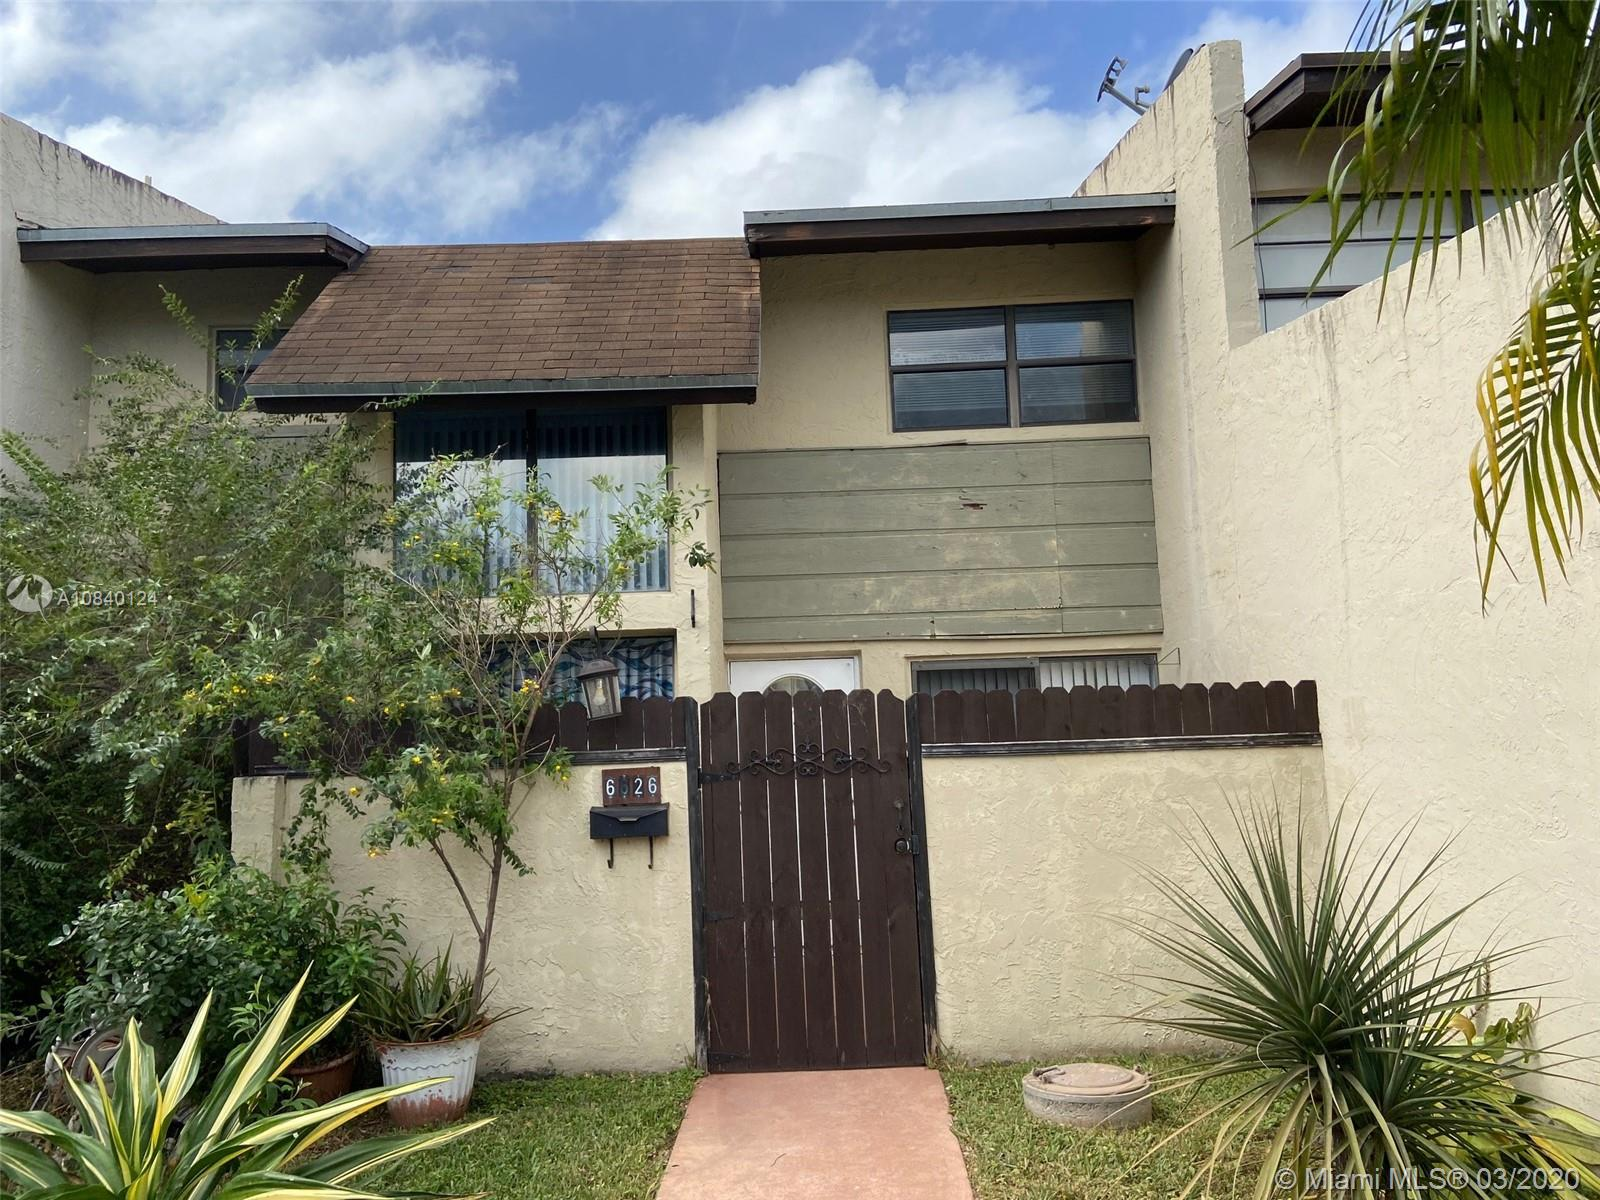 6626 SW 113th Ct, Miami, Florida 33173, 3 Bedrooms Bedrooms, ,2 BathroomsBathrooms,Residential,For Sale,6626 SW 113th Ct,A10840124